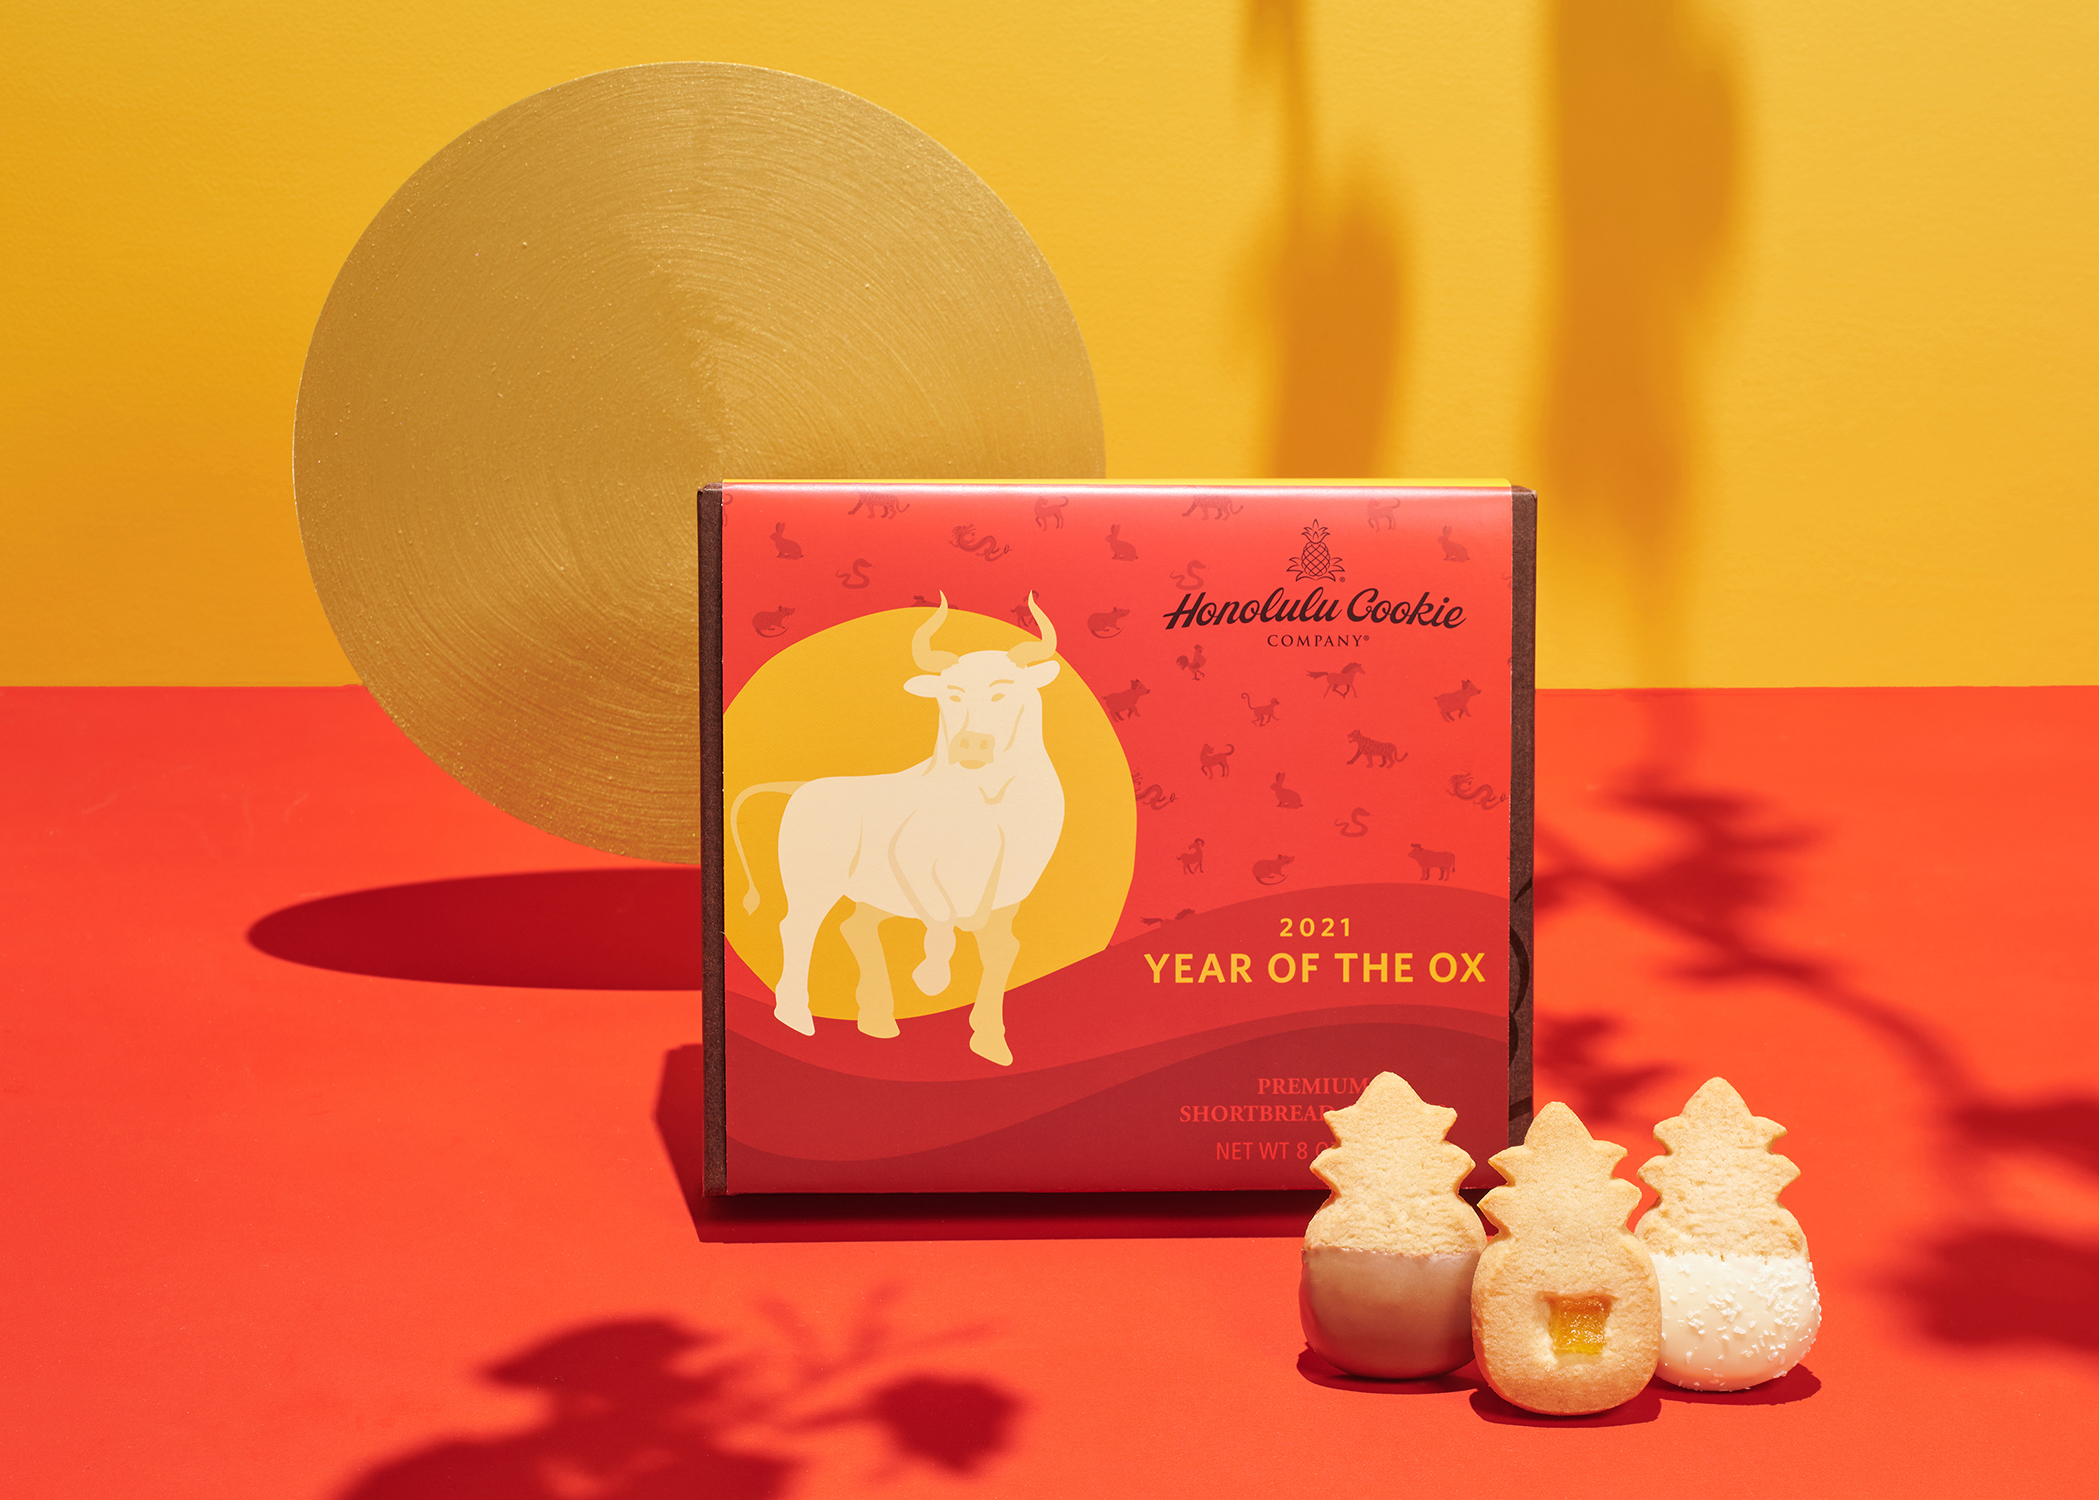 The Year of the Ox from Honolulu Cookie Company